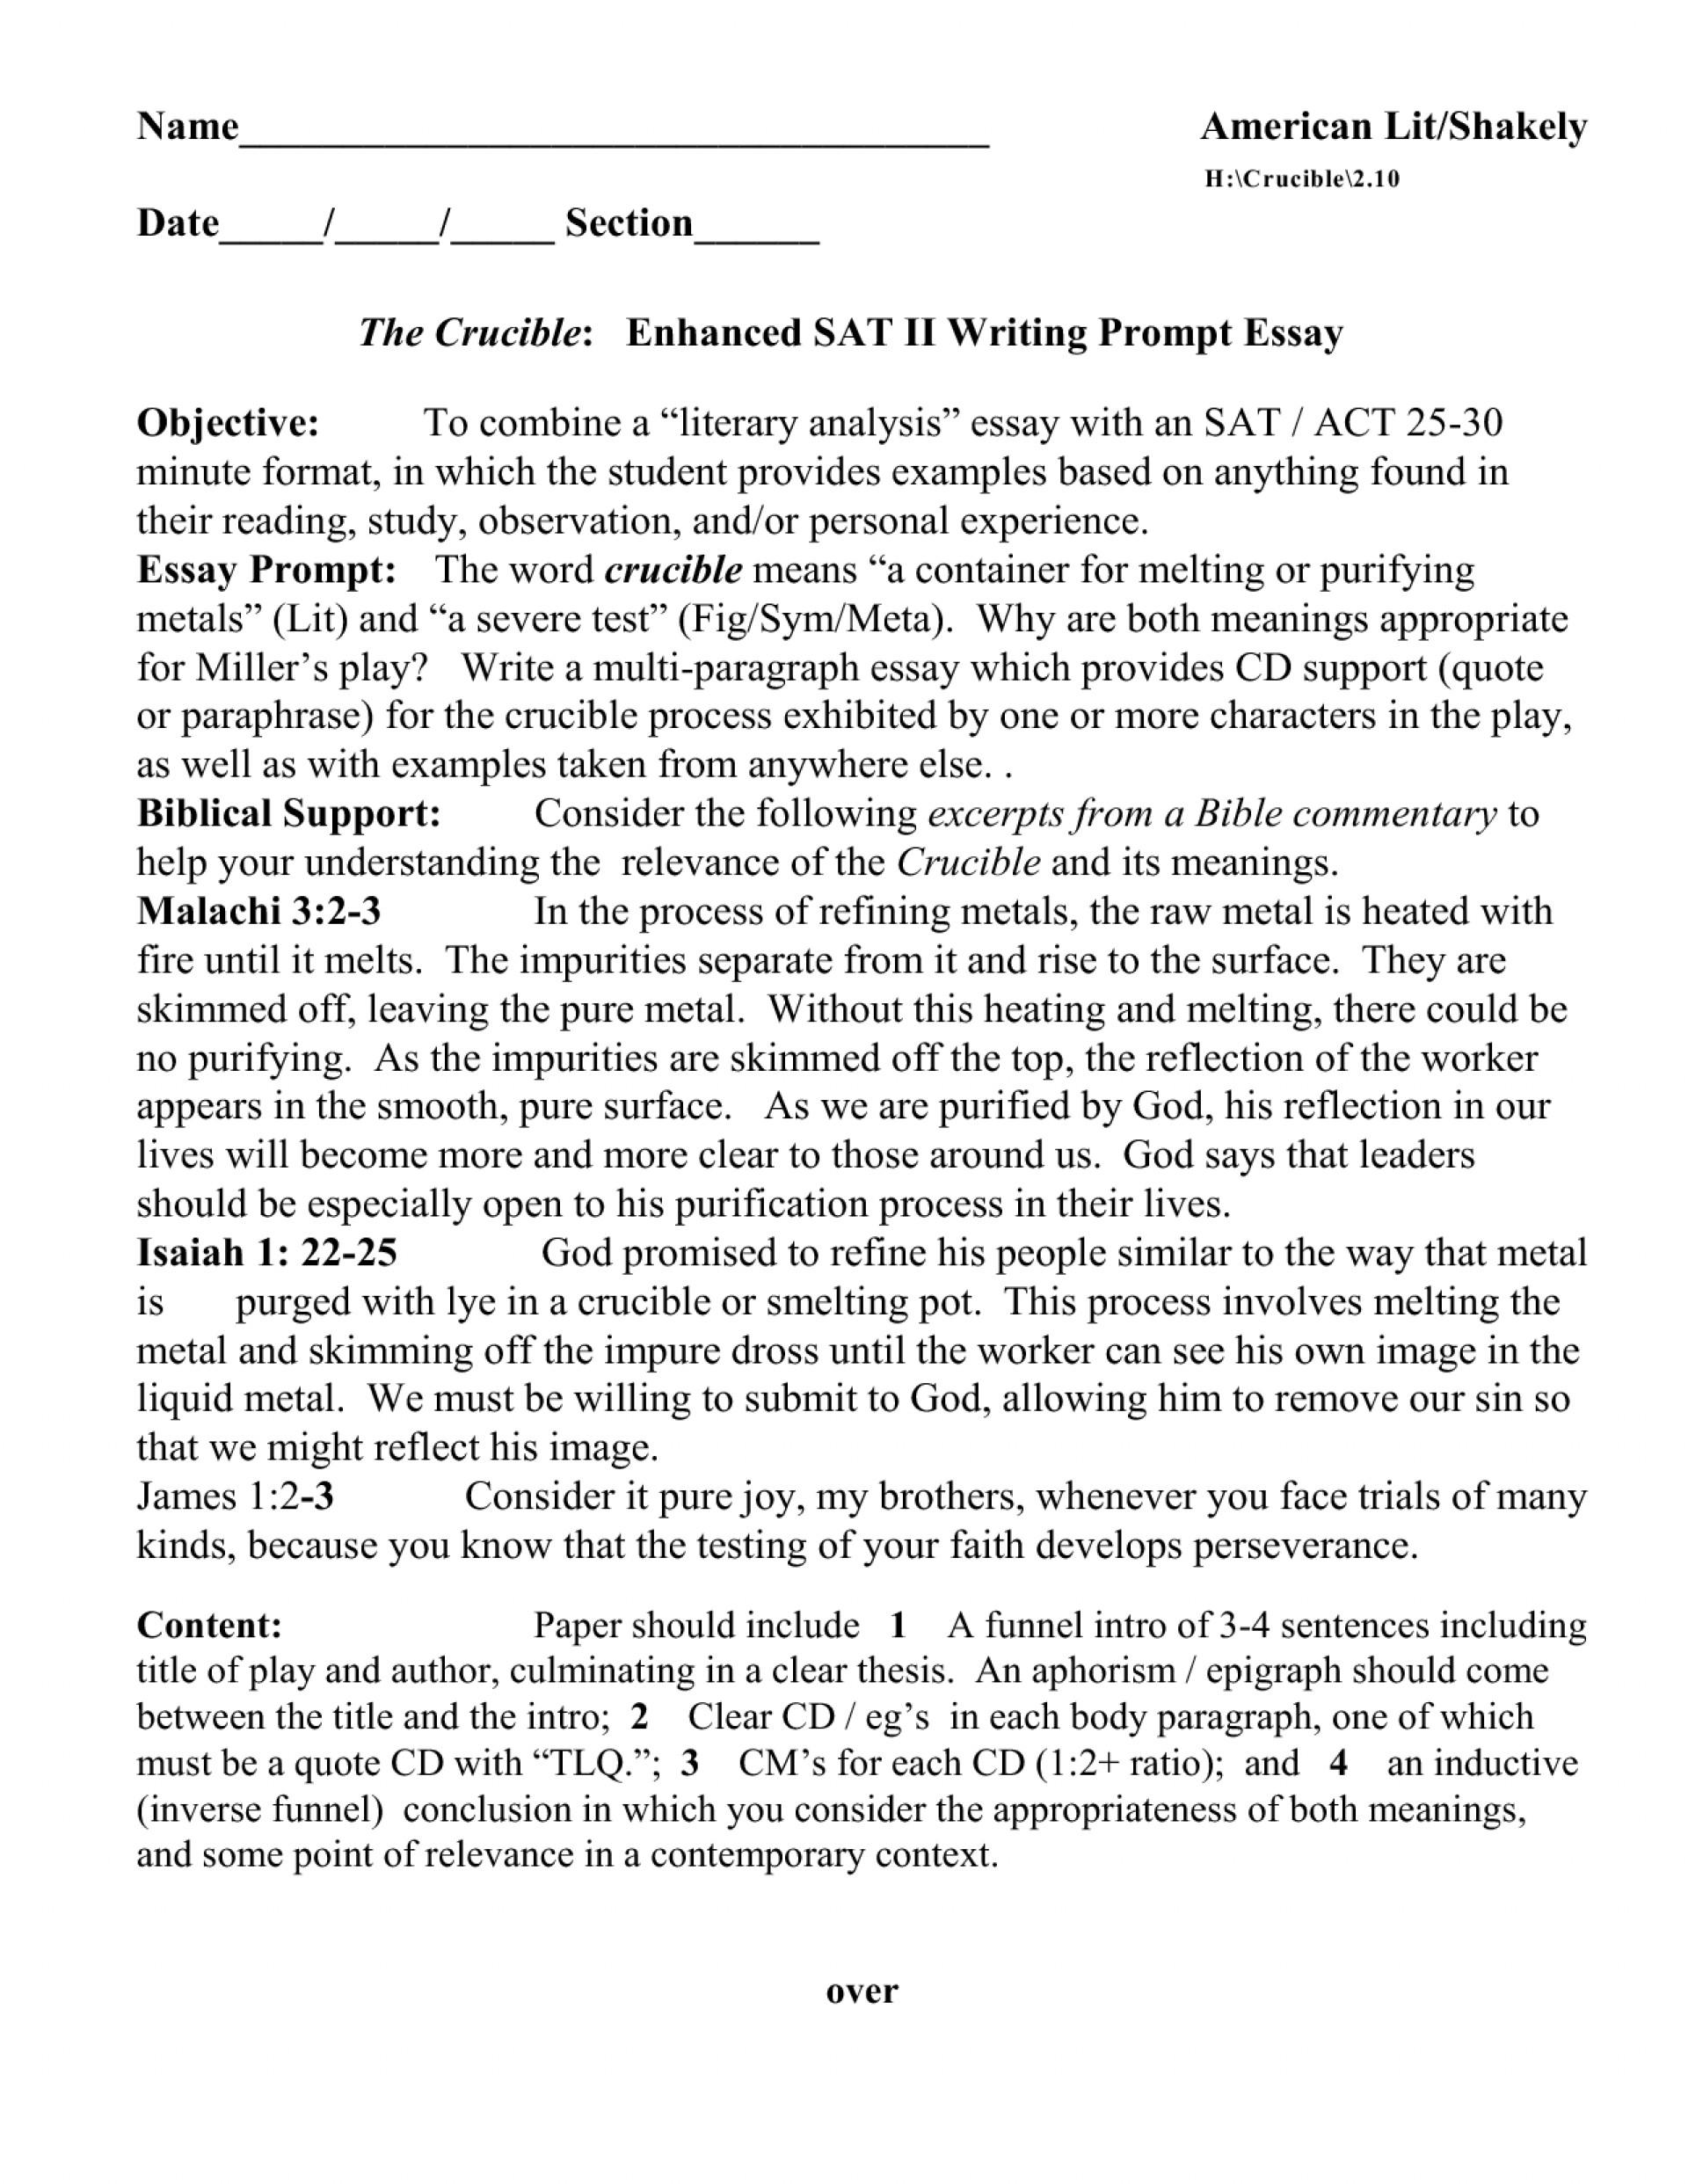 006 Sat Essays Quotes Quotesgram Is There An On The L Singular Essay Examples Reddit 2018 Writing Strategies Pdf 1920